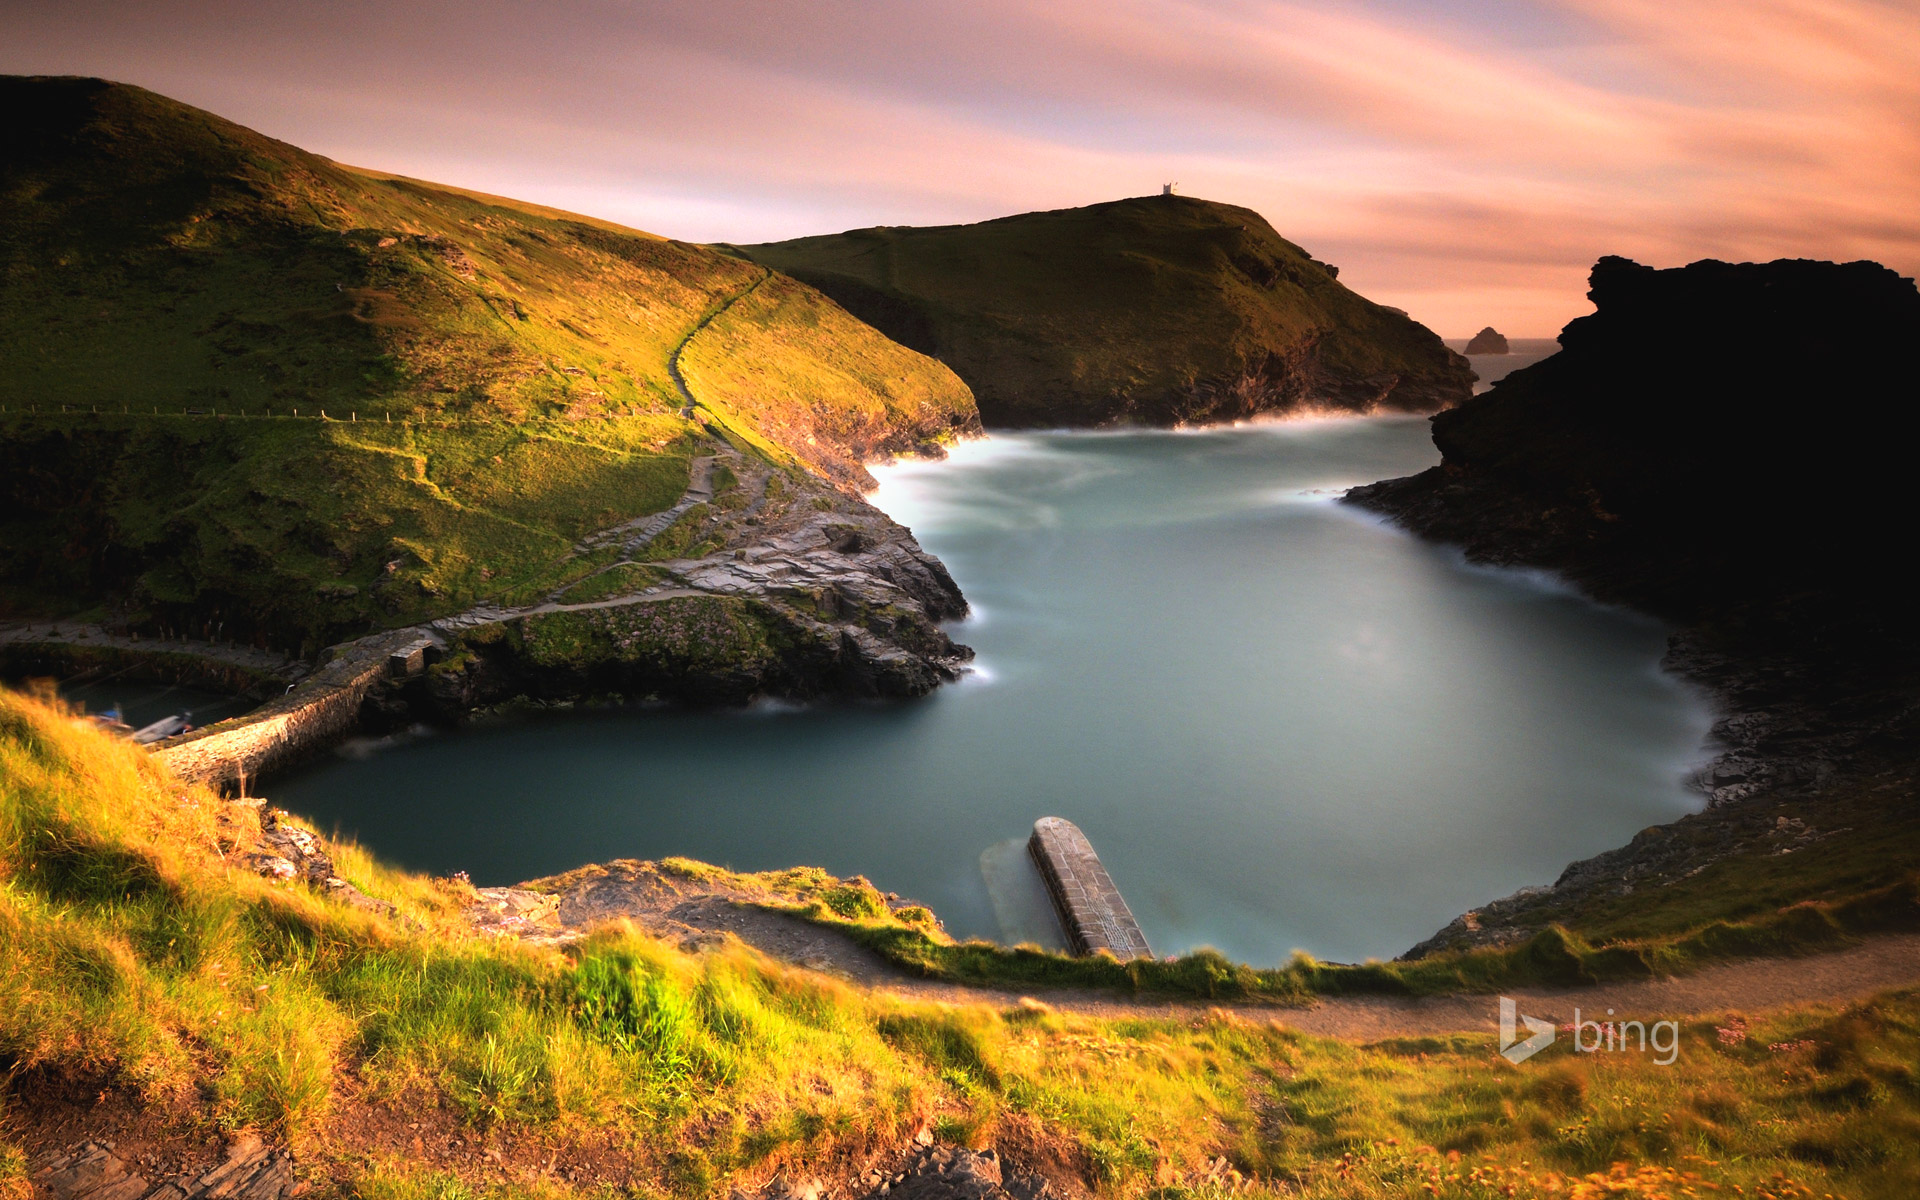 Boscastle harbour on the Cornish coast of England